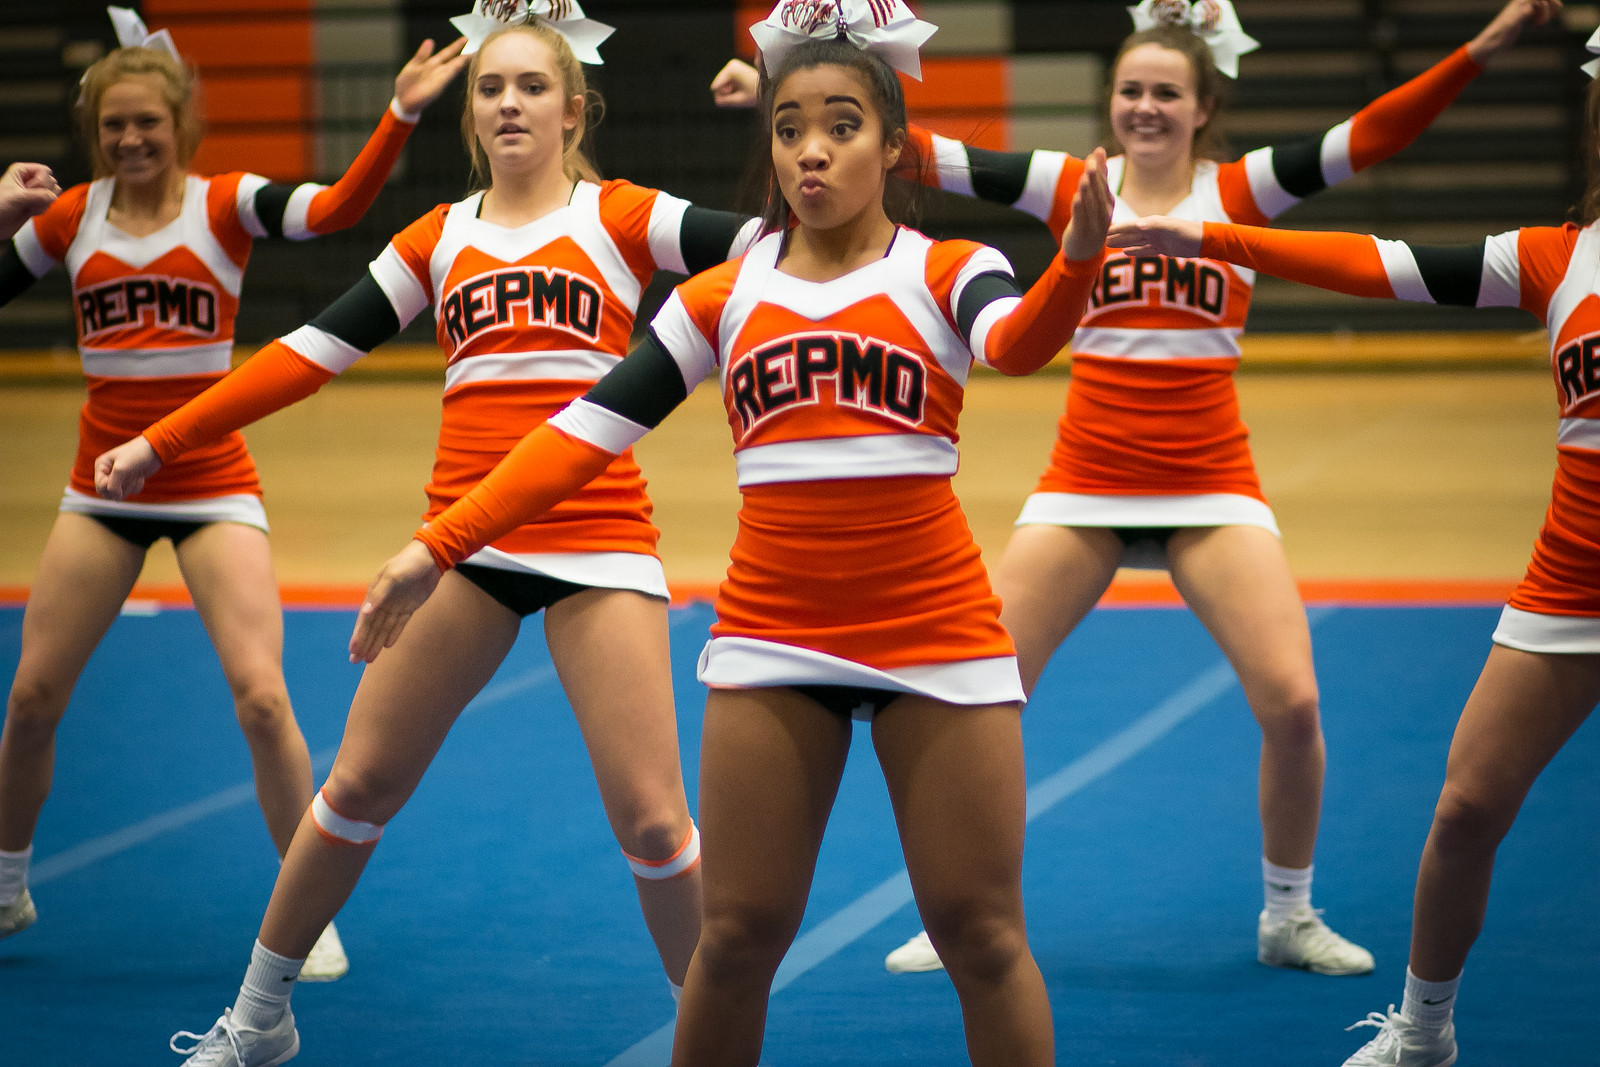 Photos: Cheer Showcase